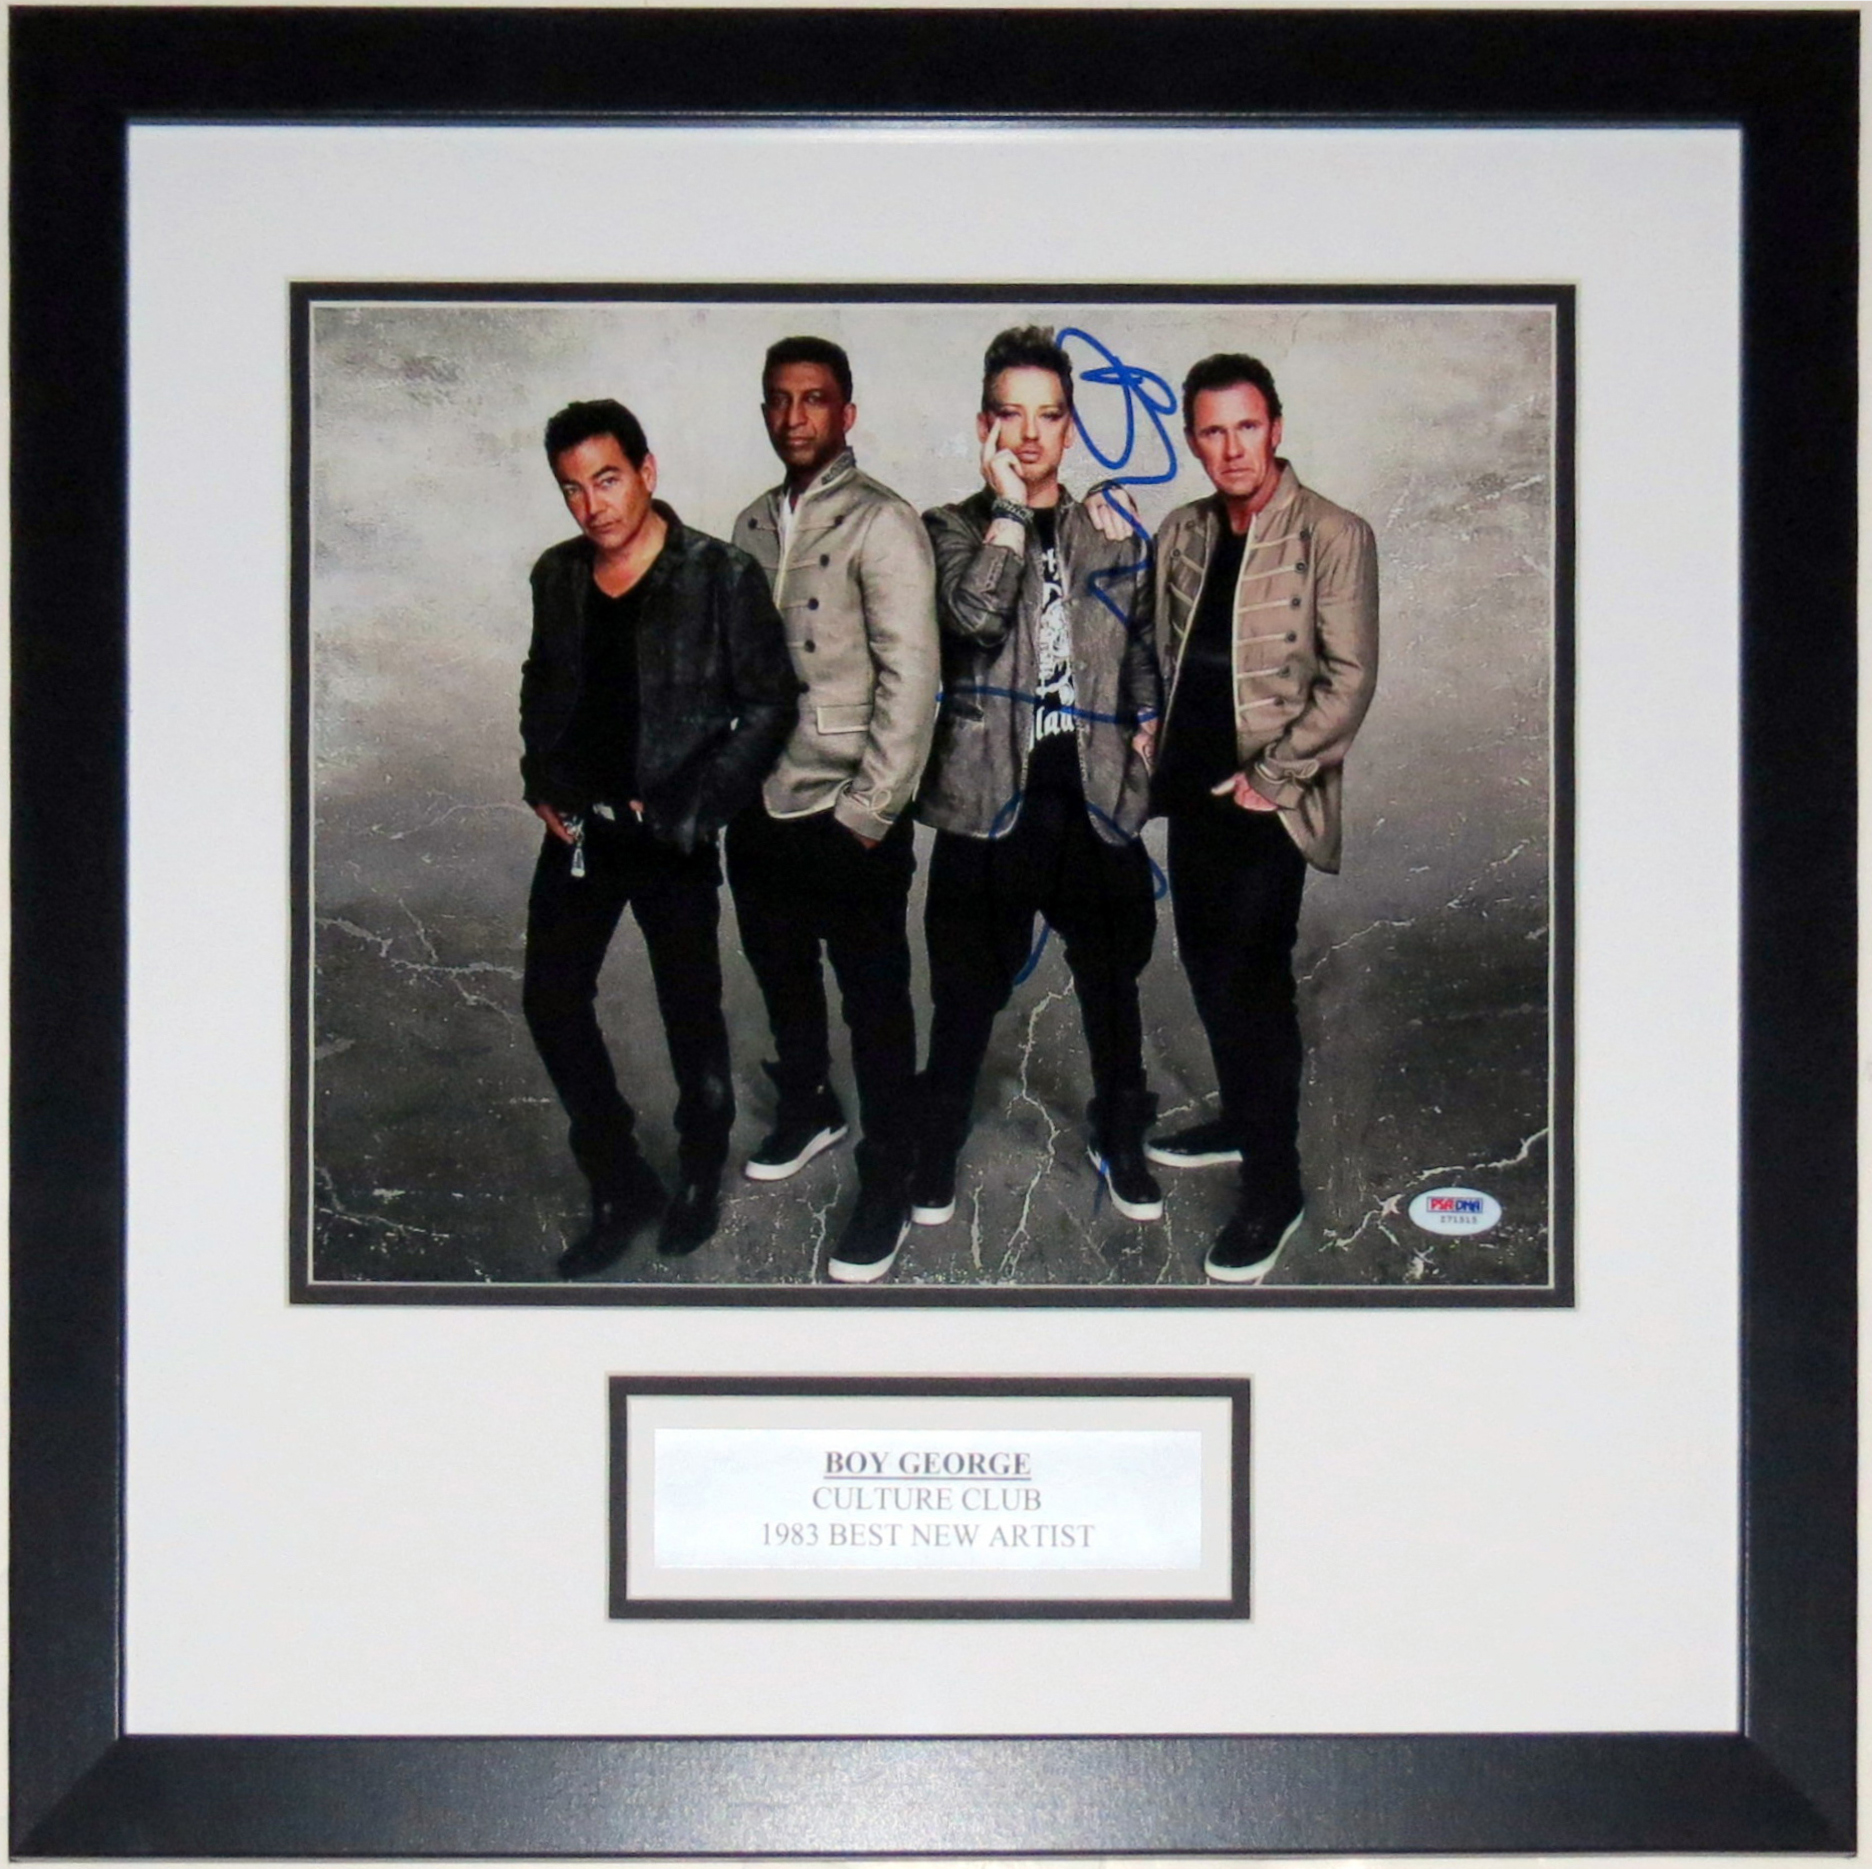 Boy George Signed Culture Club 11x14 Tour Photo - PSA DNA COA Authenticated - Professionally Framed & Plate